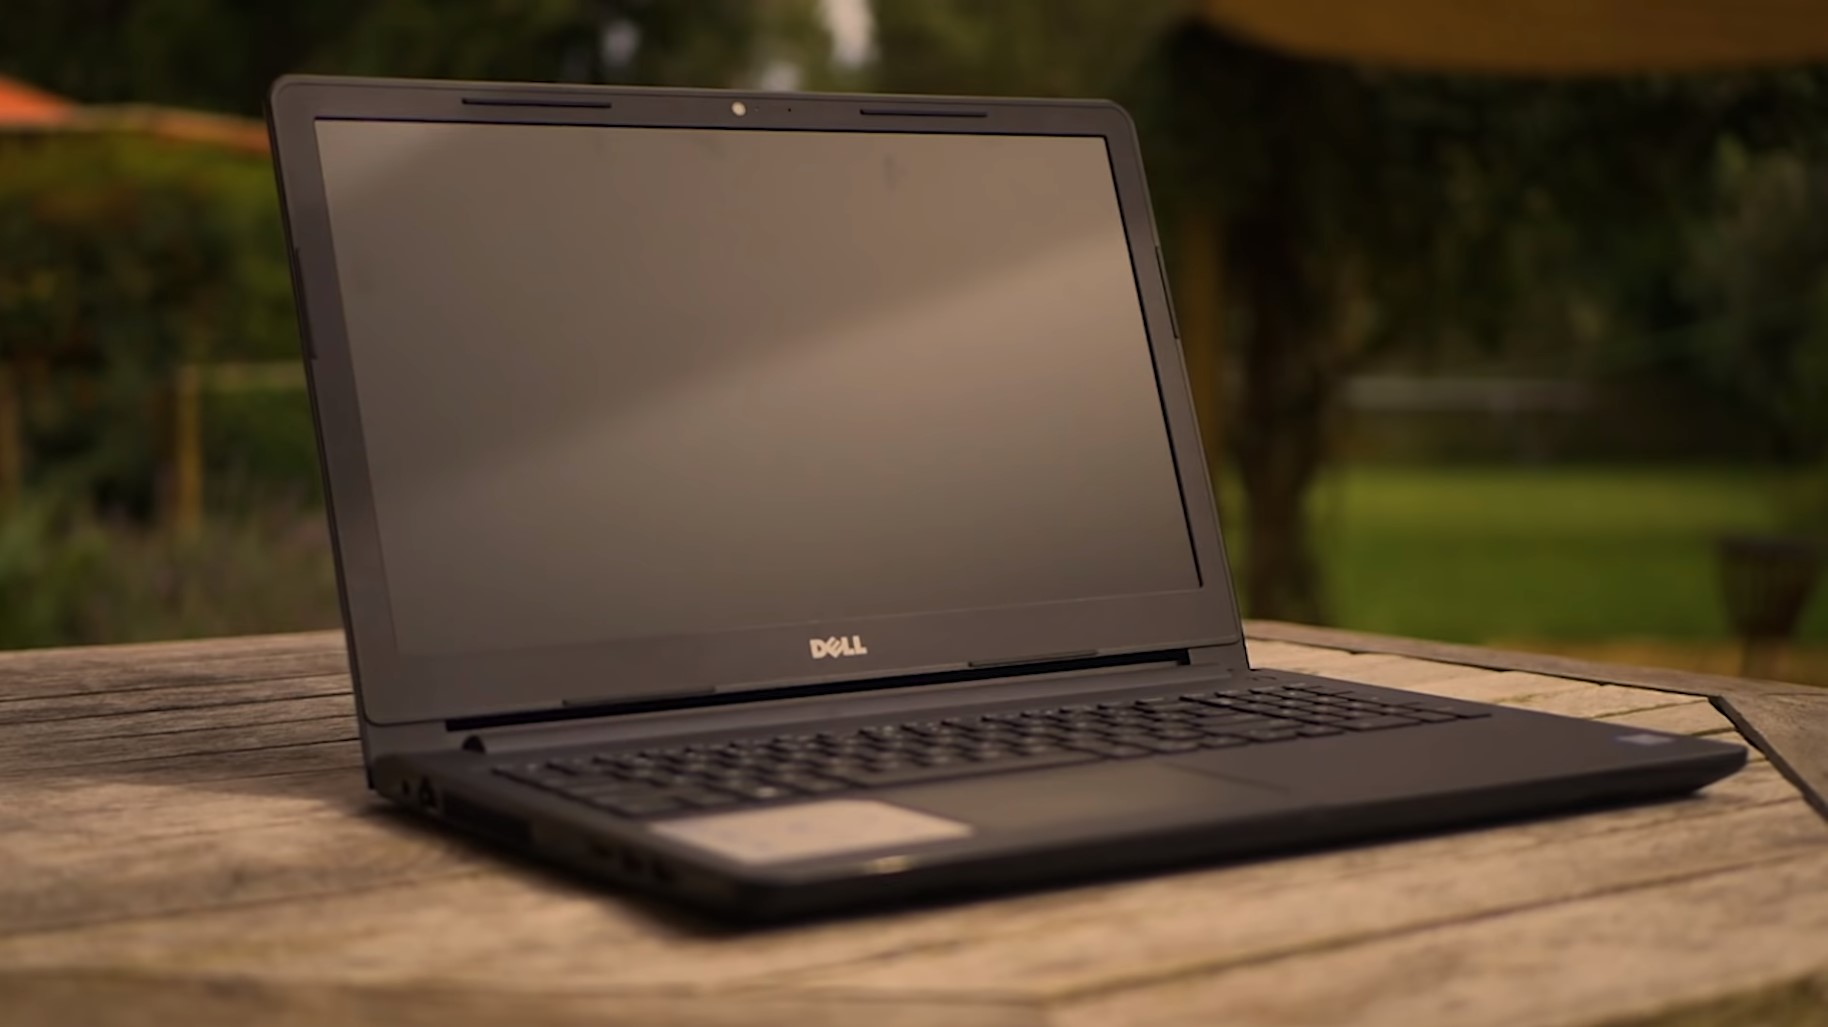 sreen of the dell inspiron 15 3000